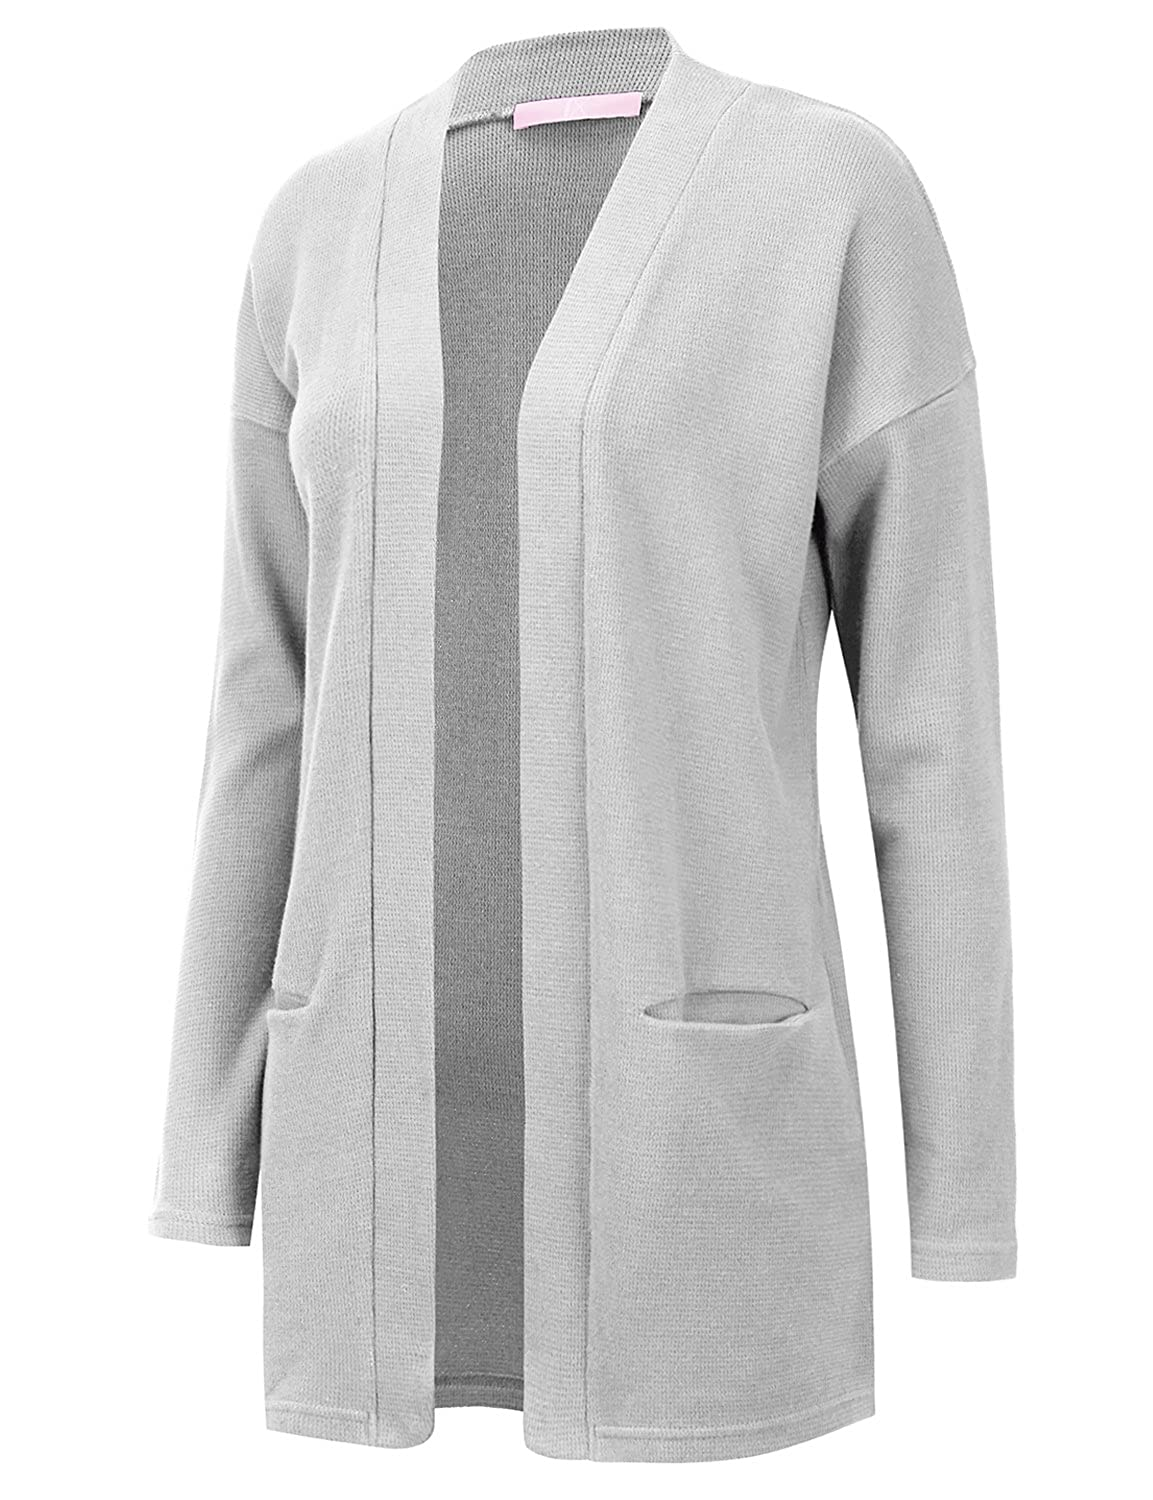 Regna X Love Coated Womens Long Sleeve Spring Cardigan Sweater 4 Styles, 10 Colors, S-3X